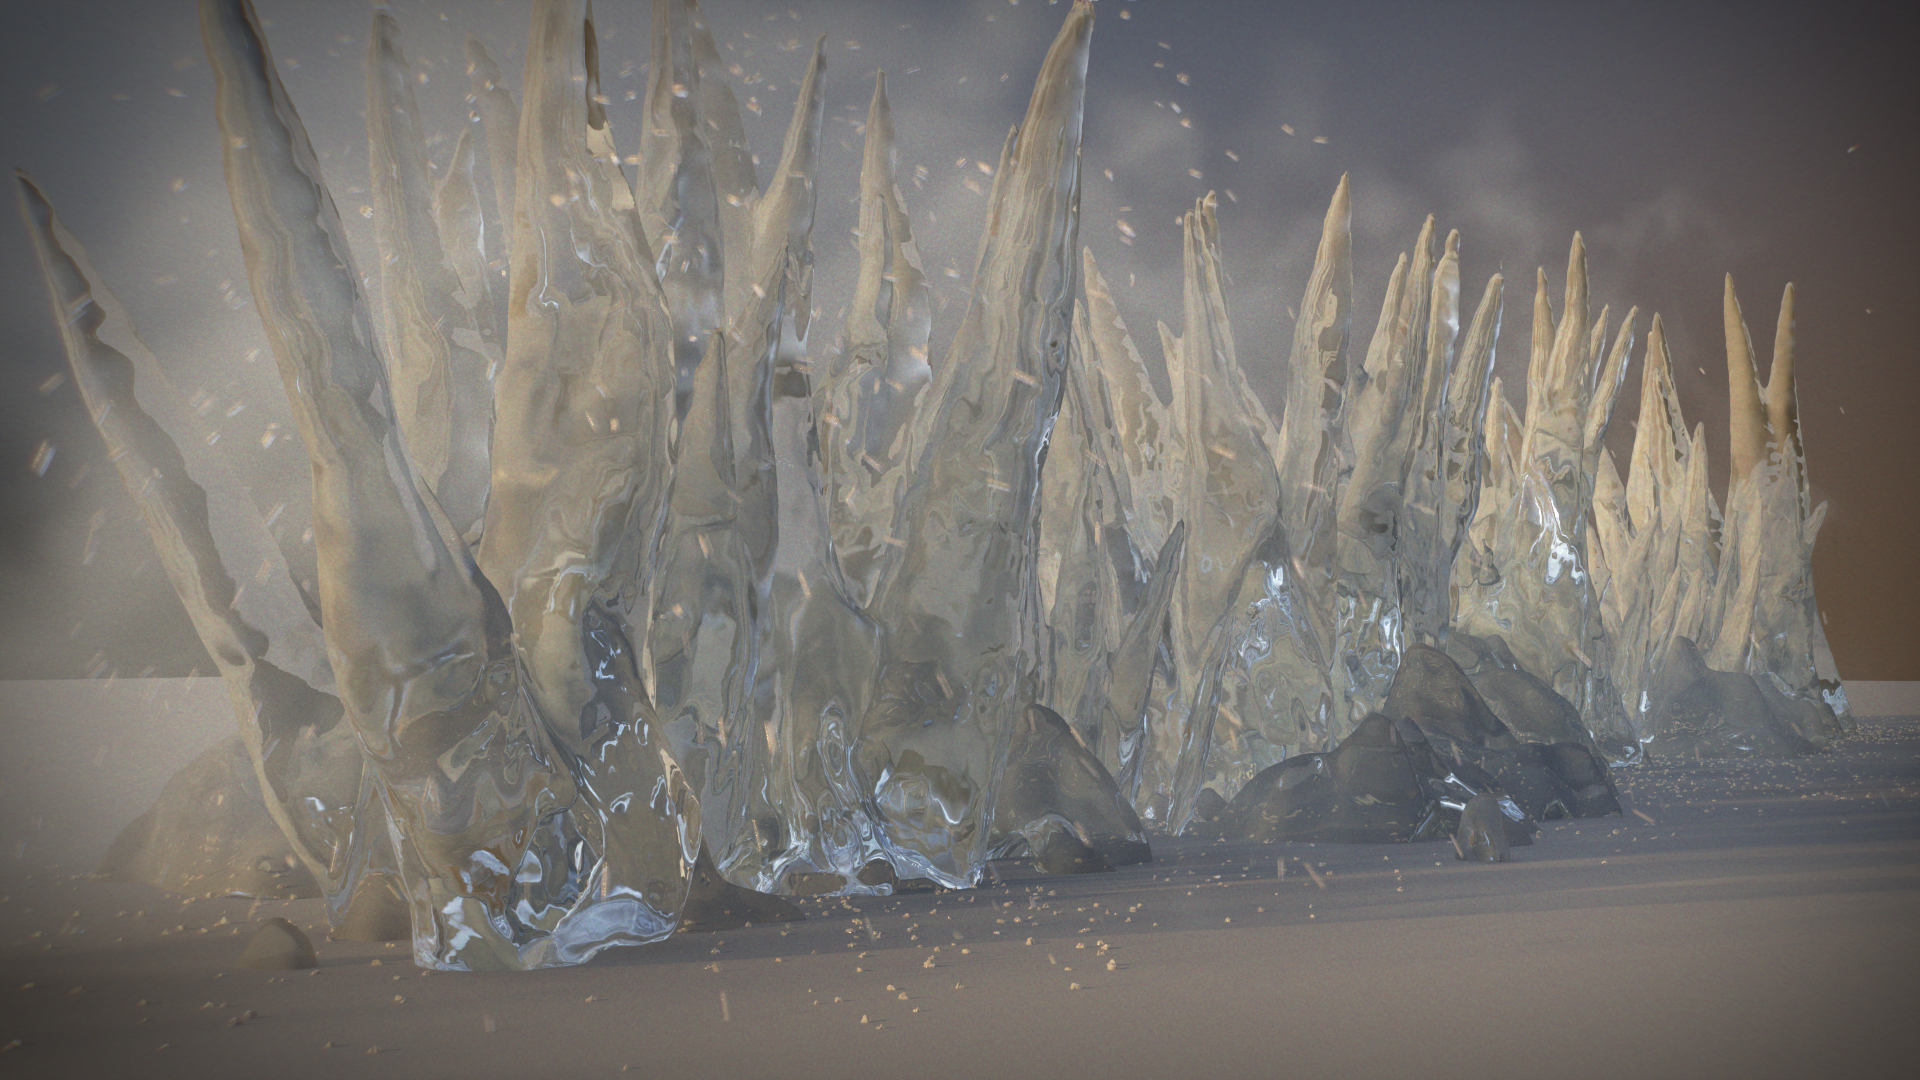 - Ice Growth